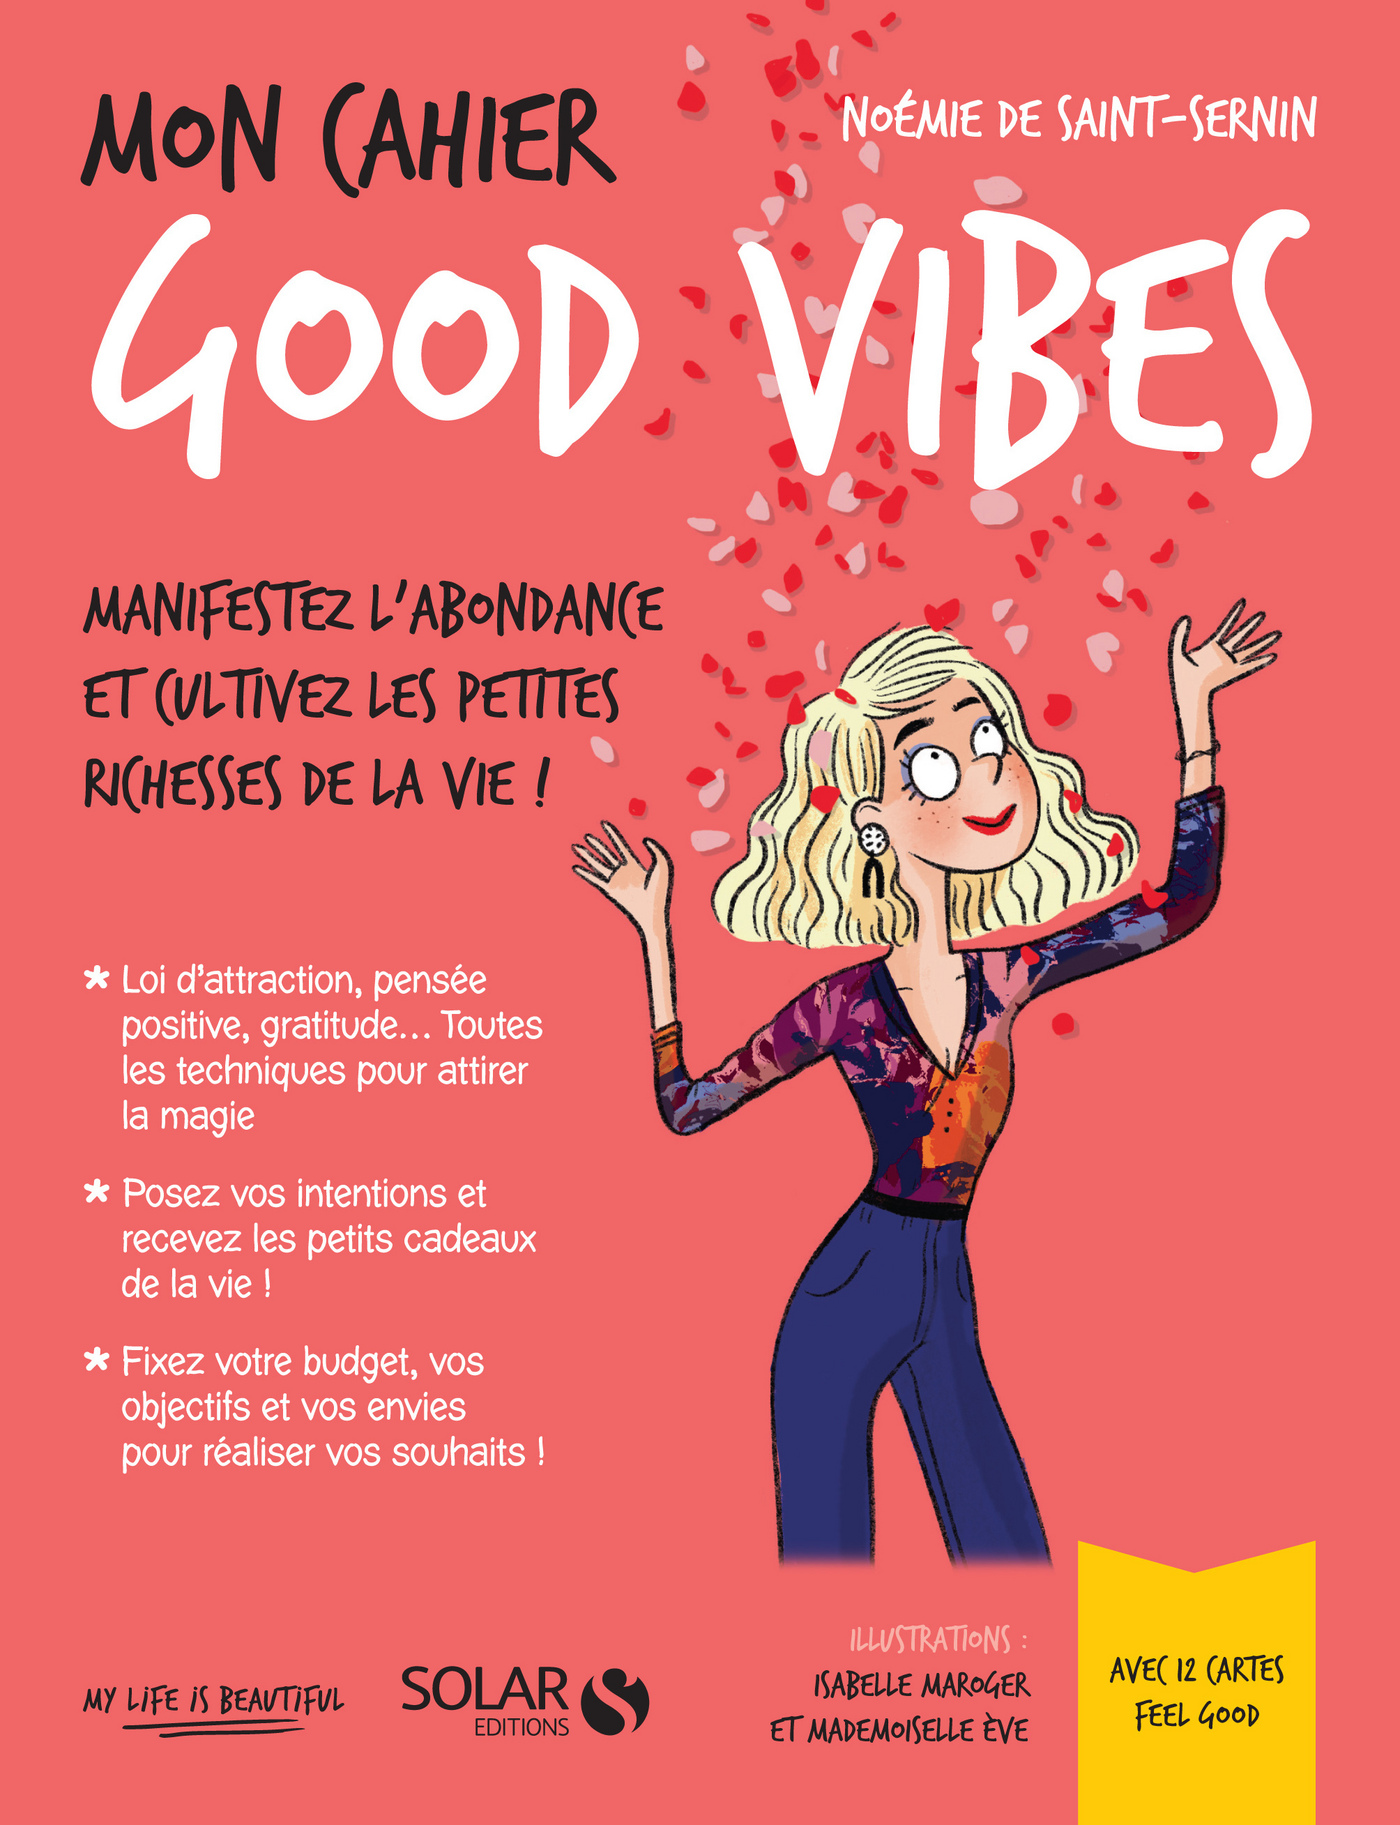 Mon cahier Good Vibes